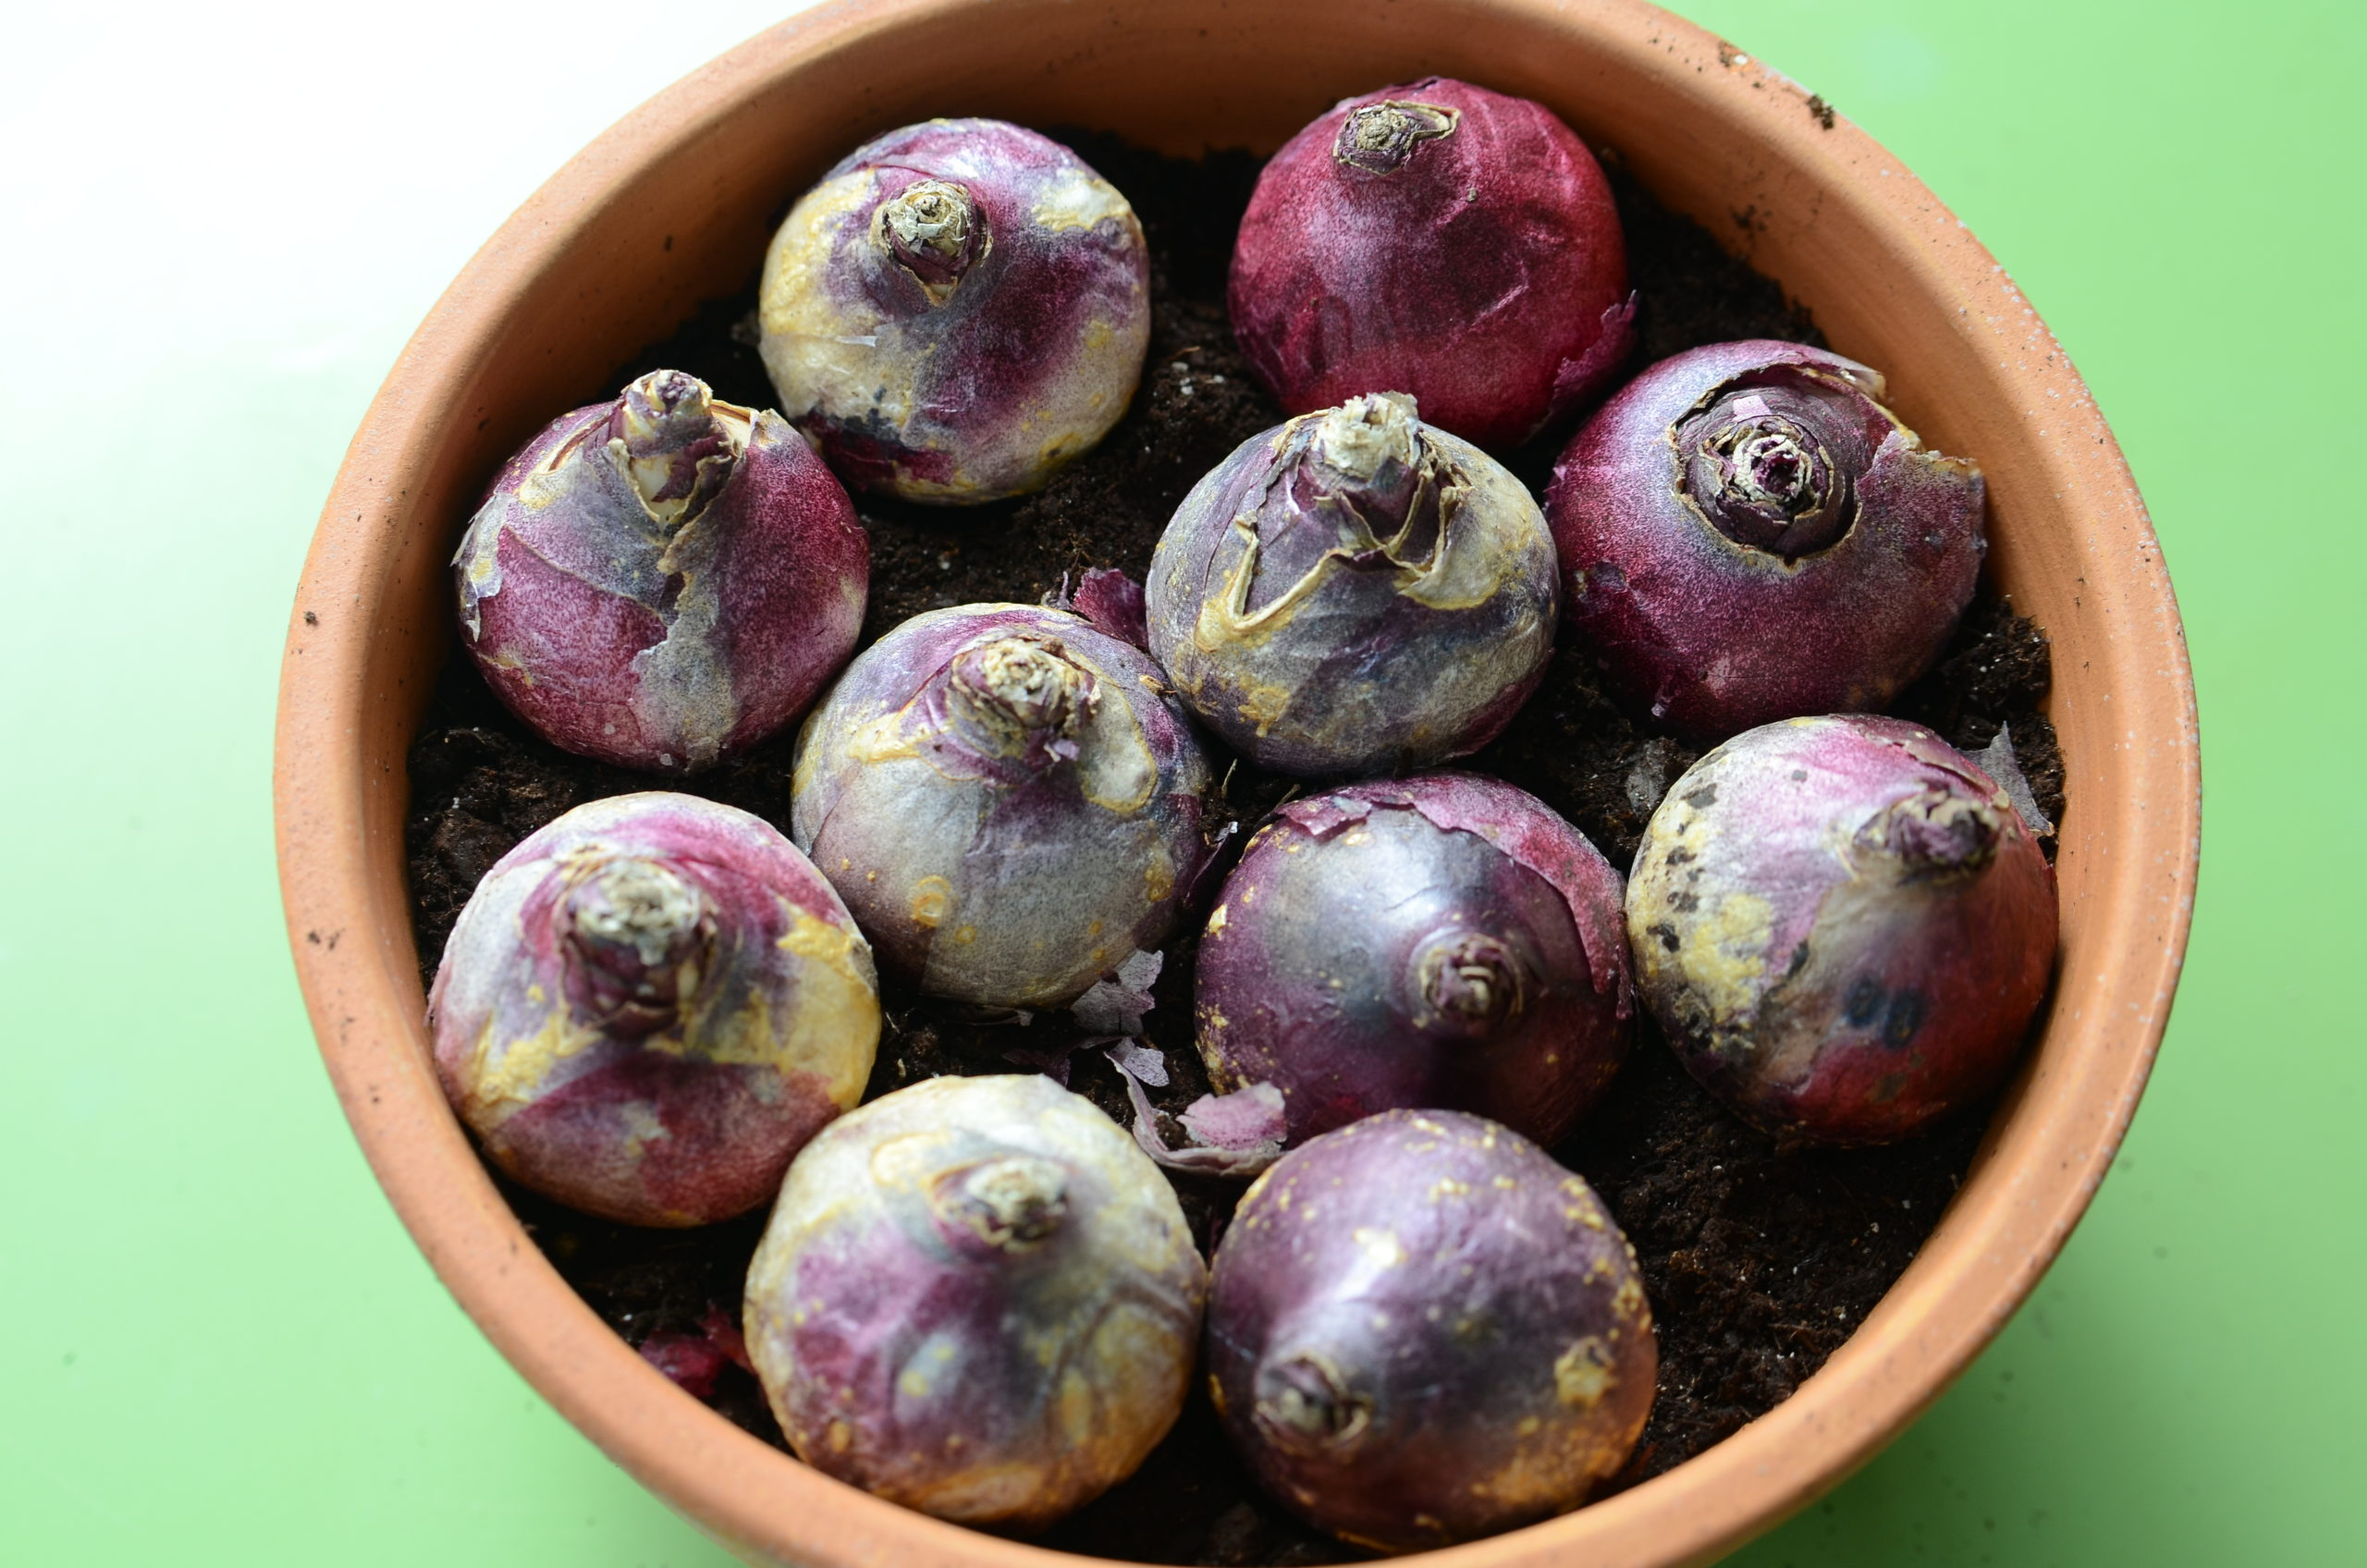 Eleven hyacinth bulbs have been set on the soil in a 10-inch bulb pan. No matter what bulb is planted, the